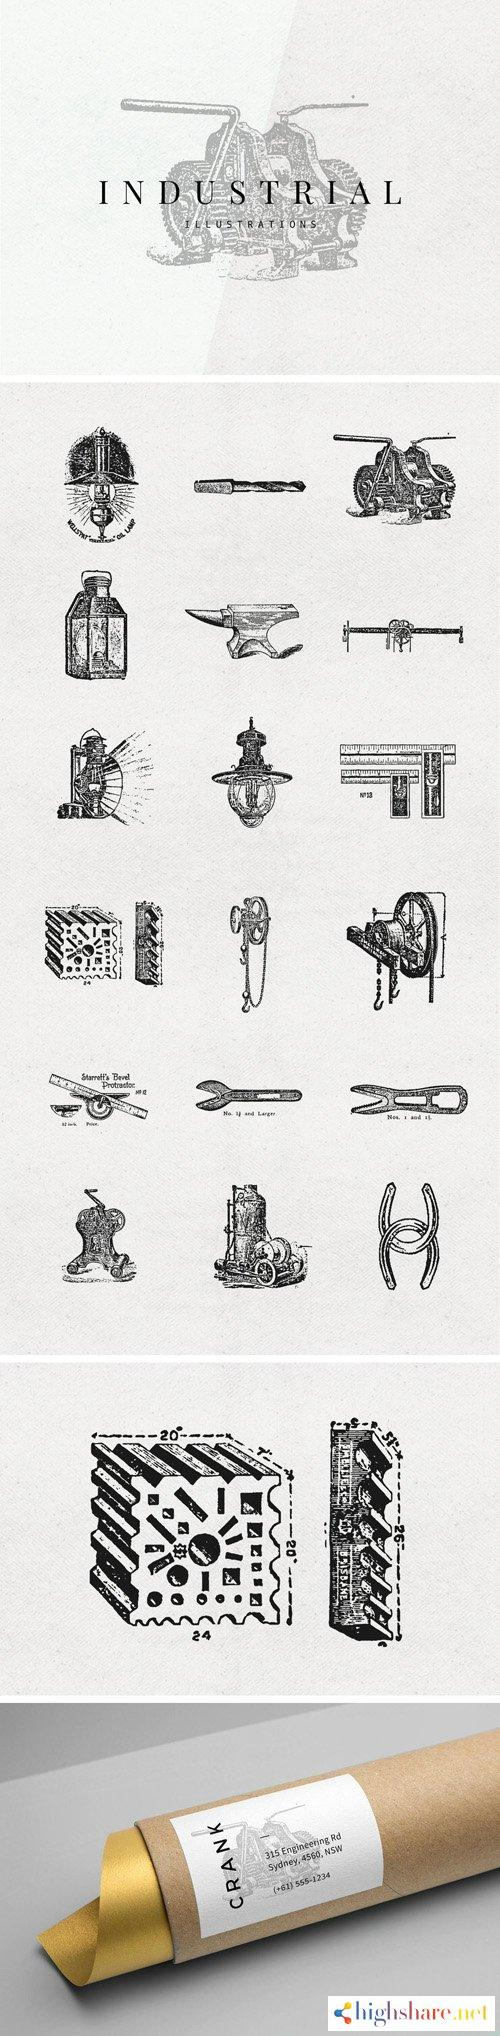 18 industrial vector illustrations set ai eps png 5f40c8a6585aa - 18 Industrial Vector Illustrations Set [Ai/EPS/PNG]